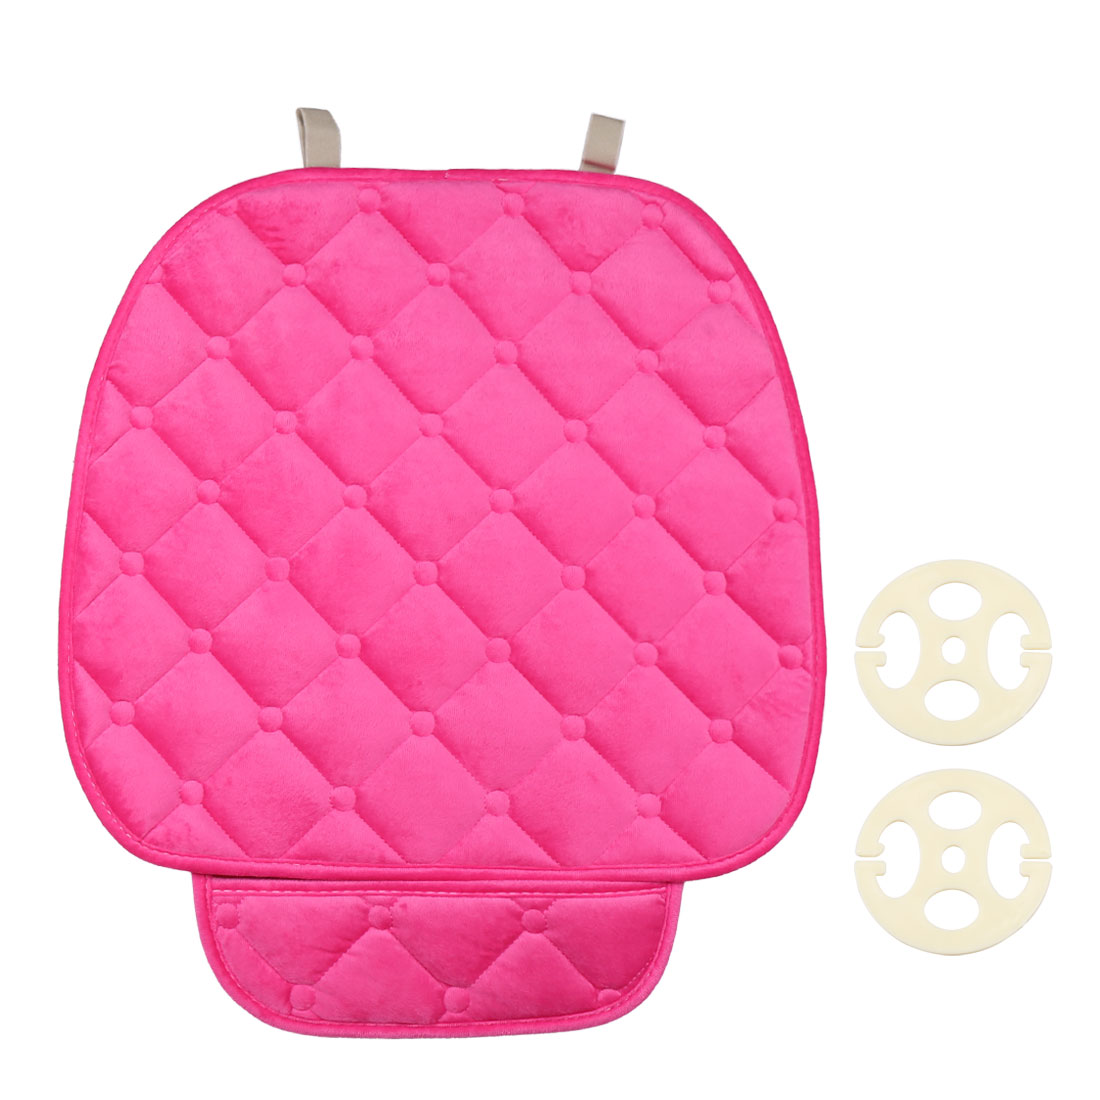 Pink Beige Universal Car Auto Seat Cover Warm Plush Cushion Pad Mat